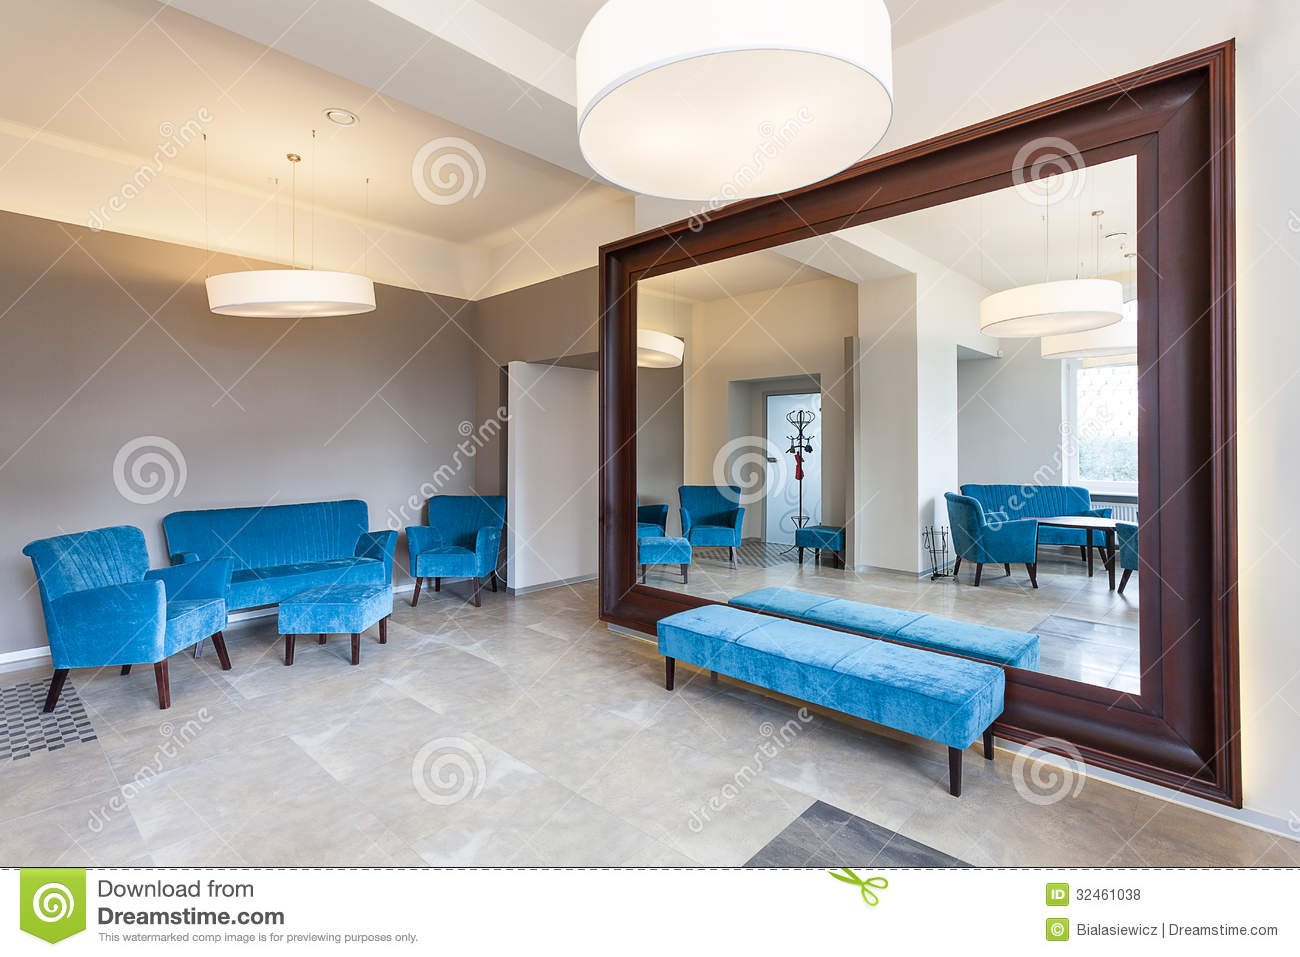 Huge Mirror Huge Mirror And Sofa Stock Photo Image Of Decor Armchair 32461038